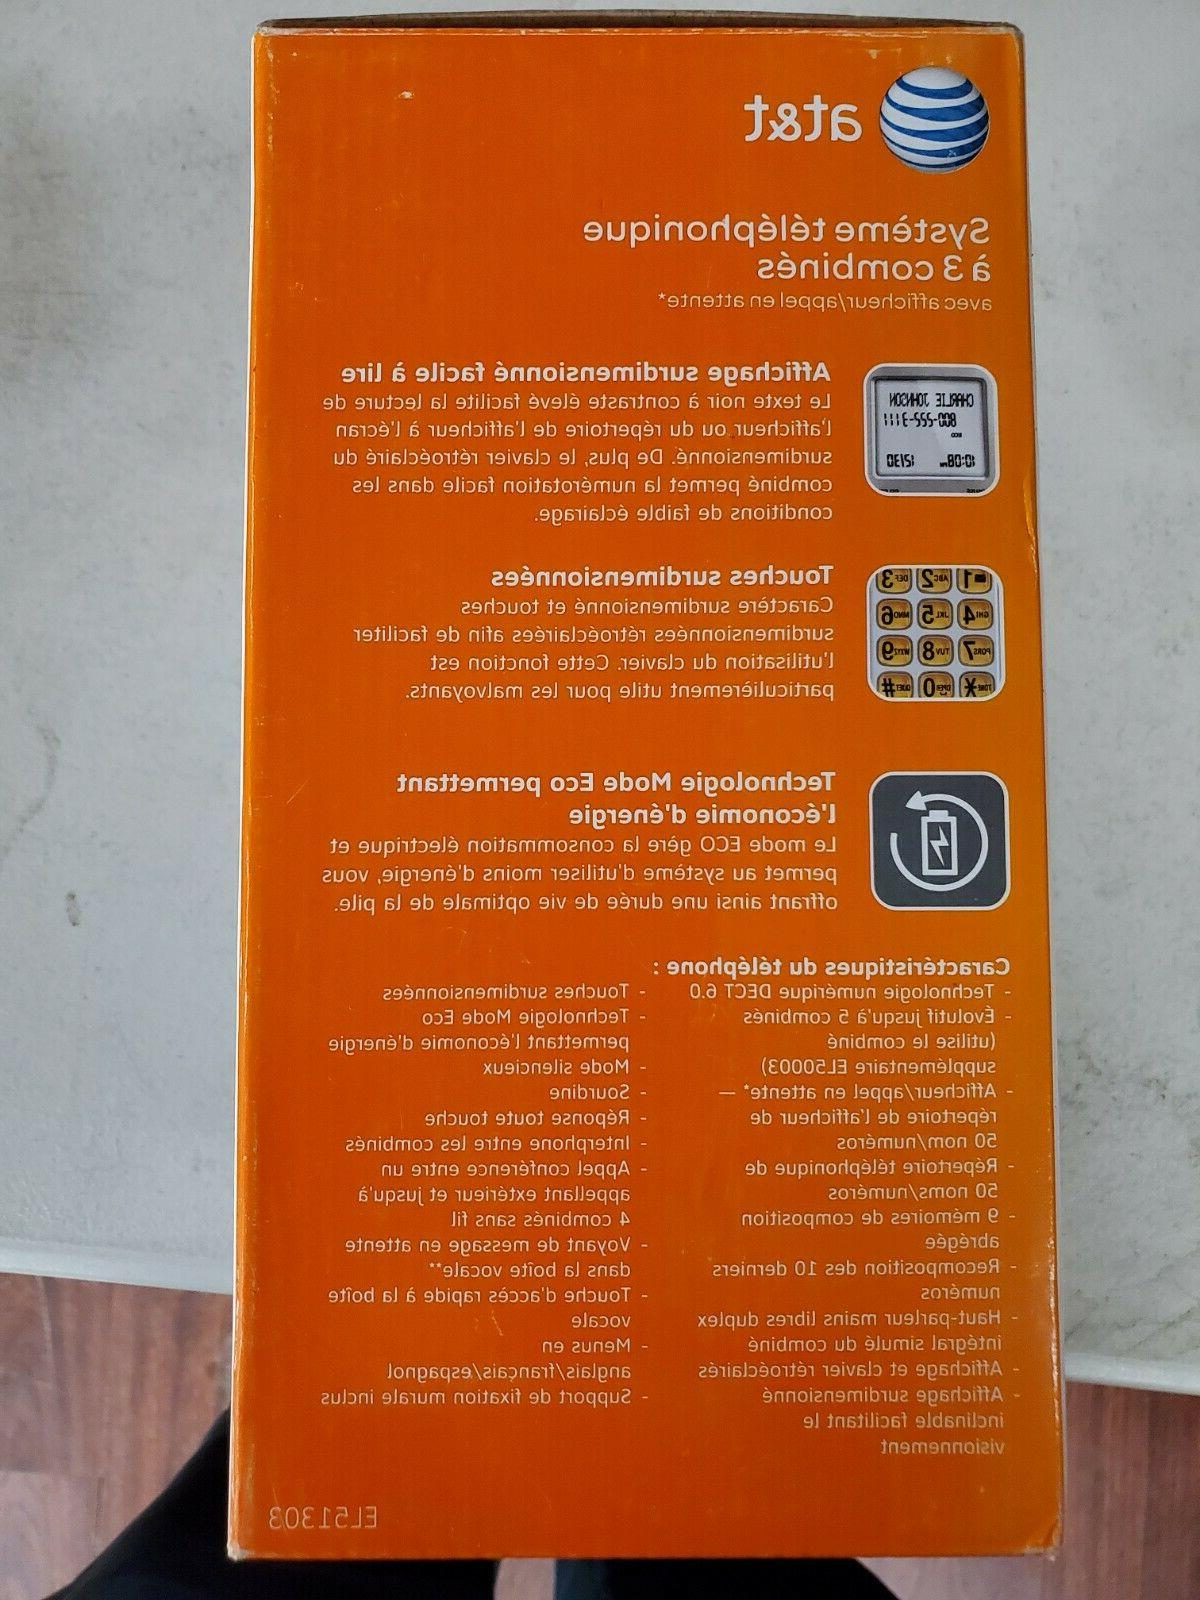 At&t 3 handset phone system